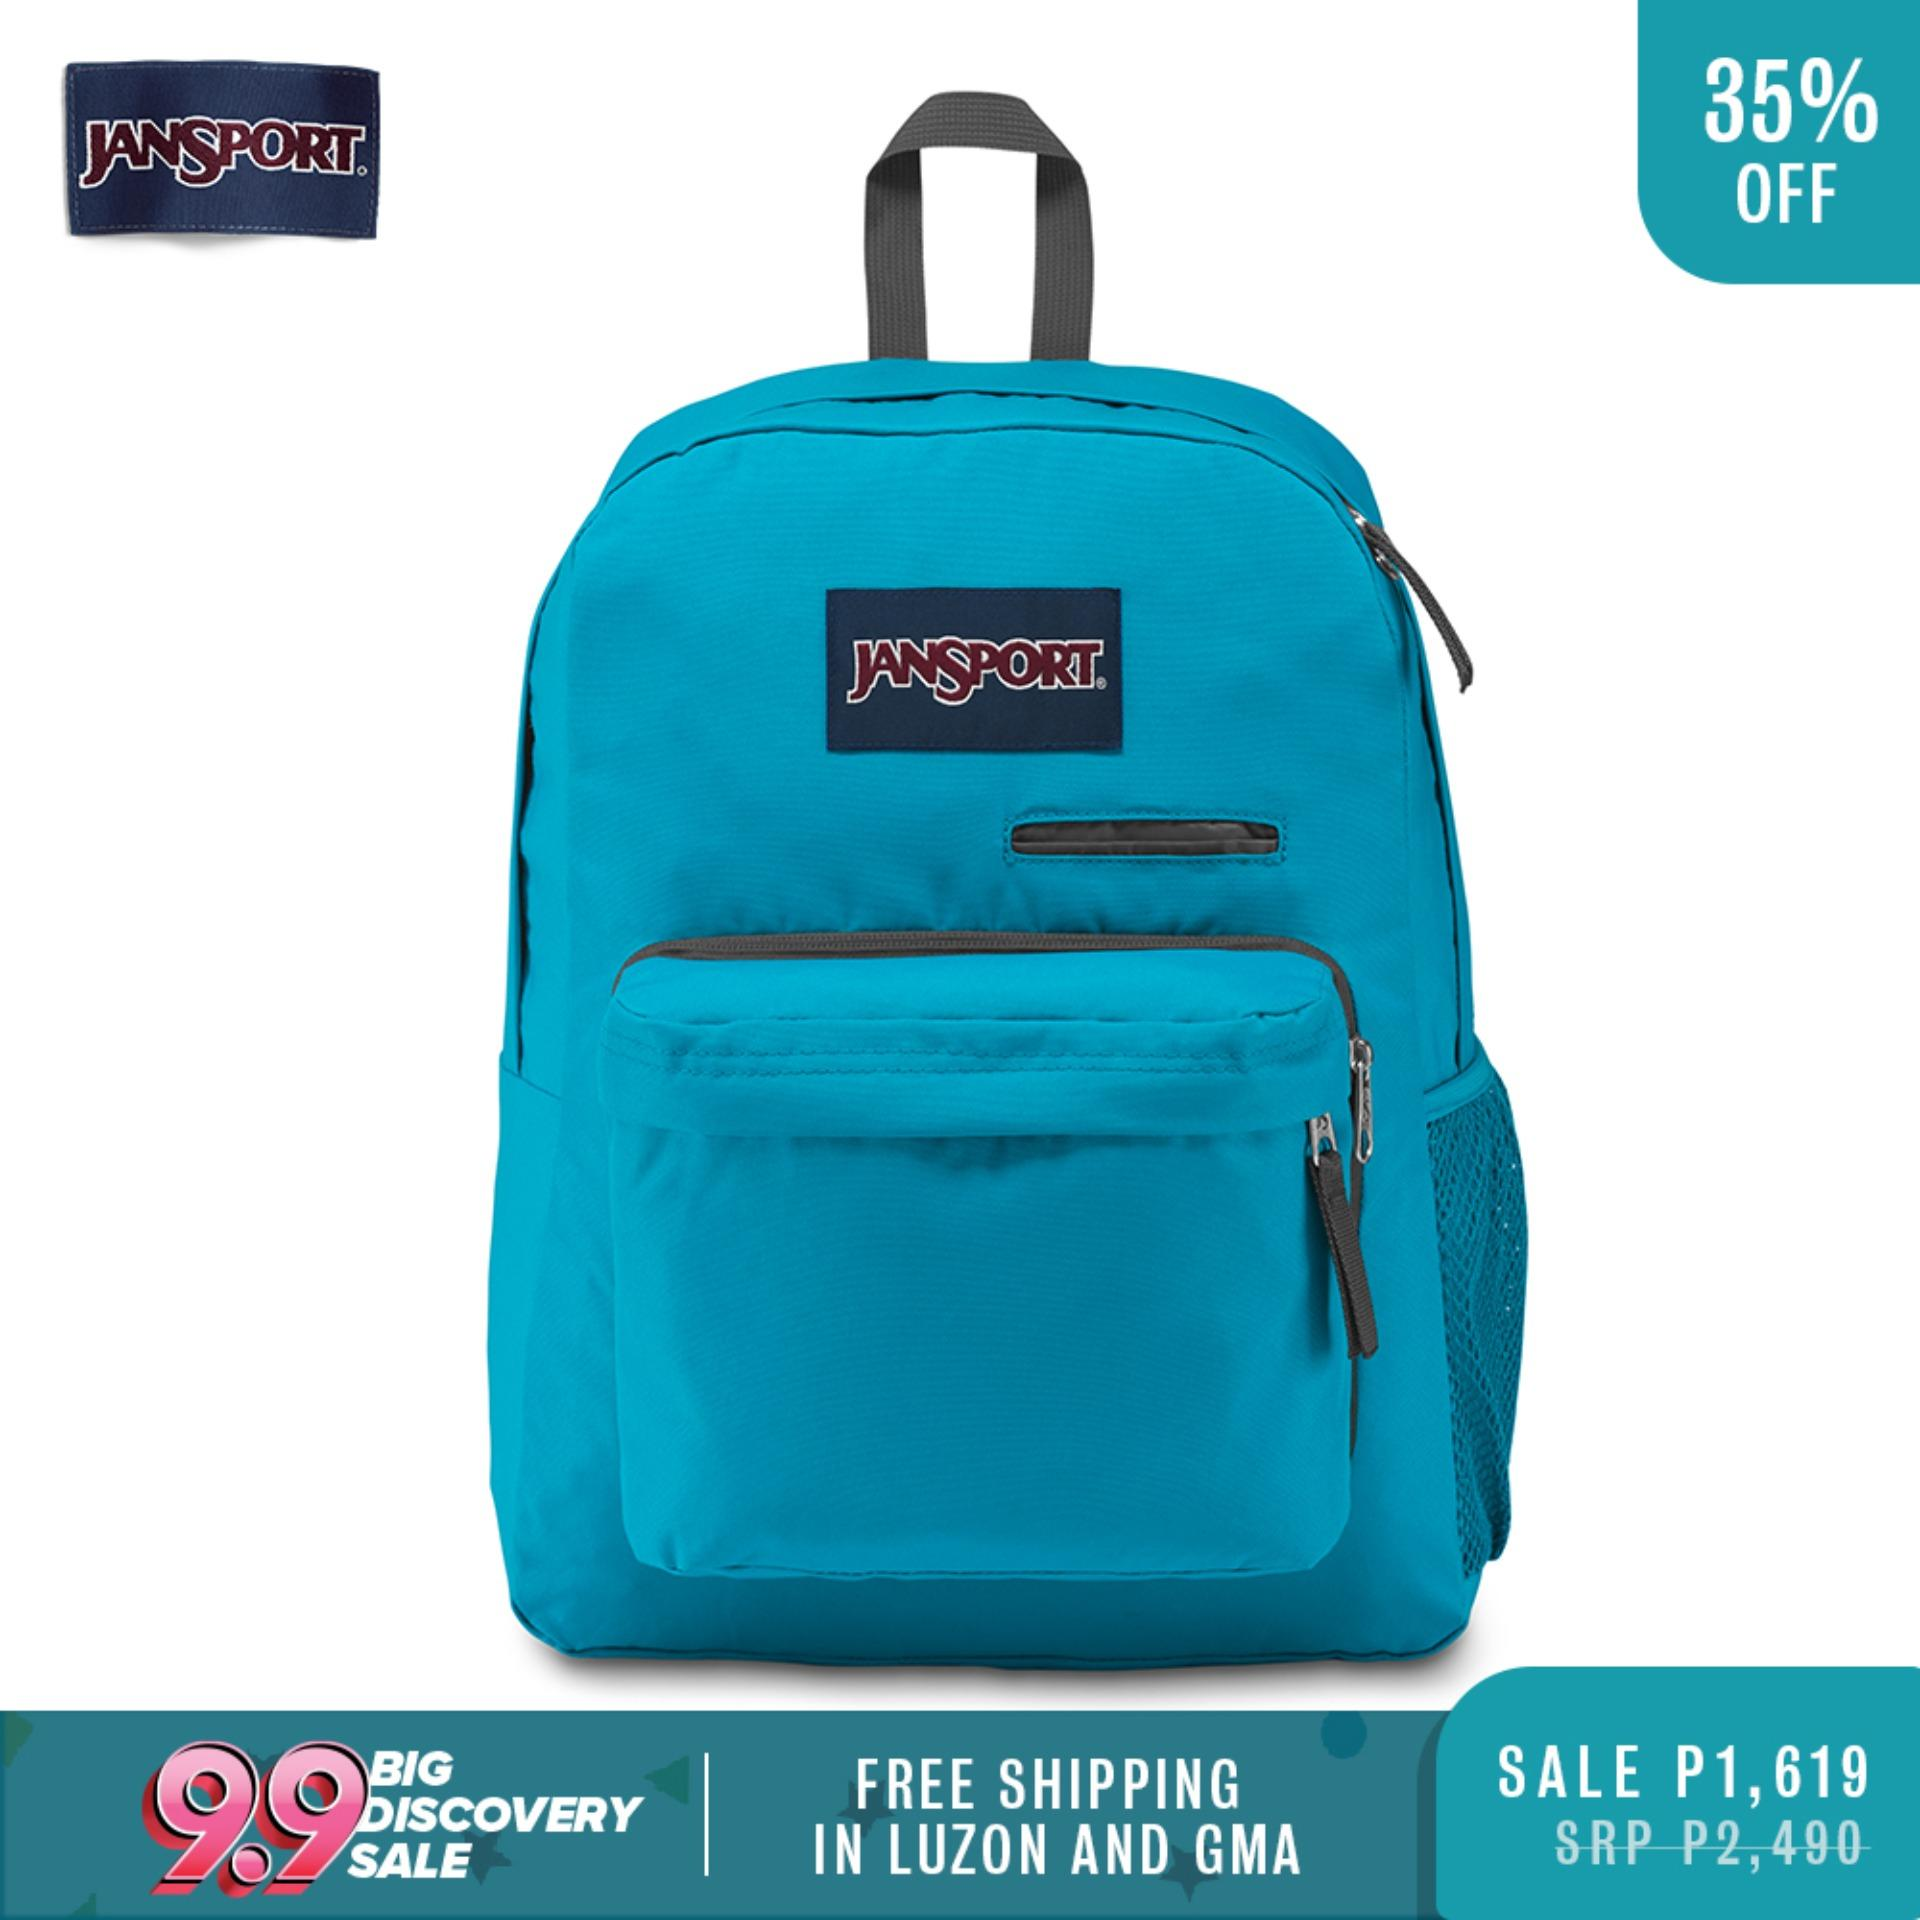 JanSport Digibreak Backpack 600 Denier Polyester Backpacks